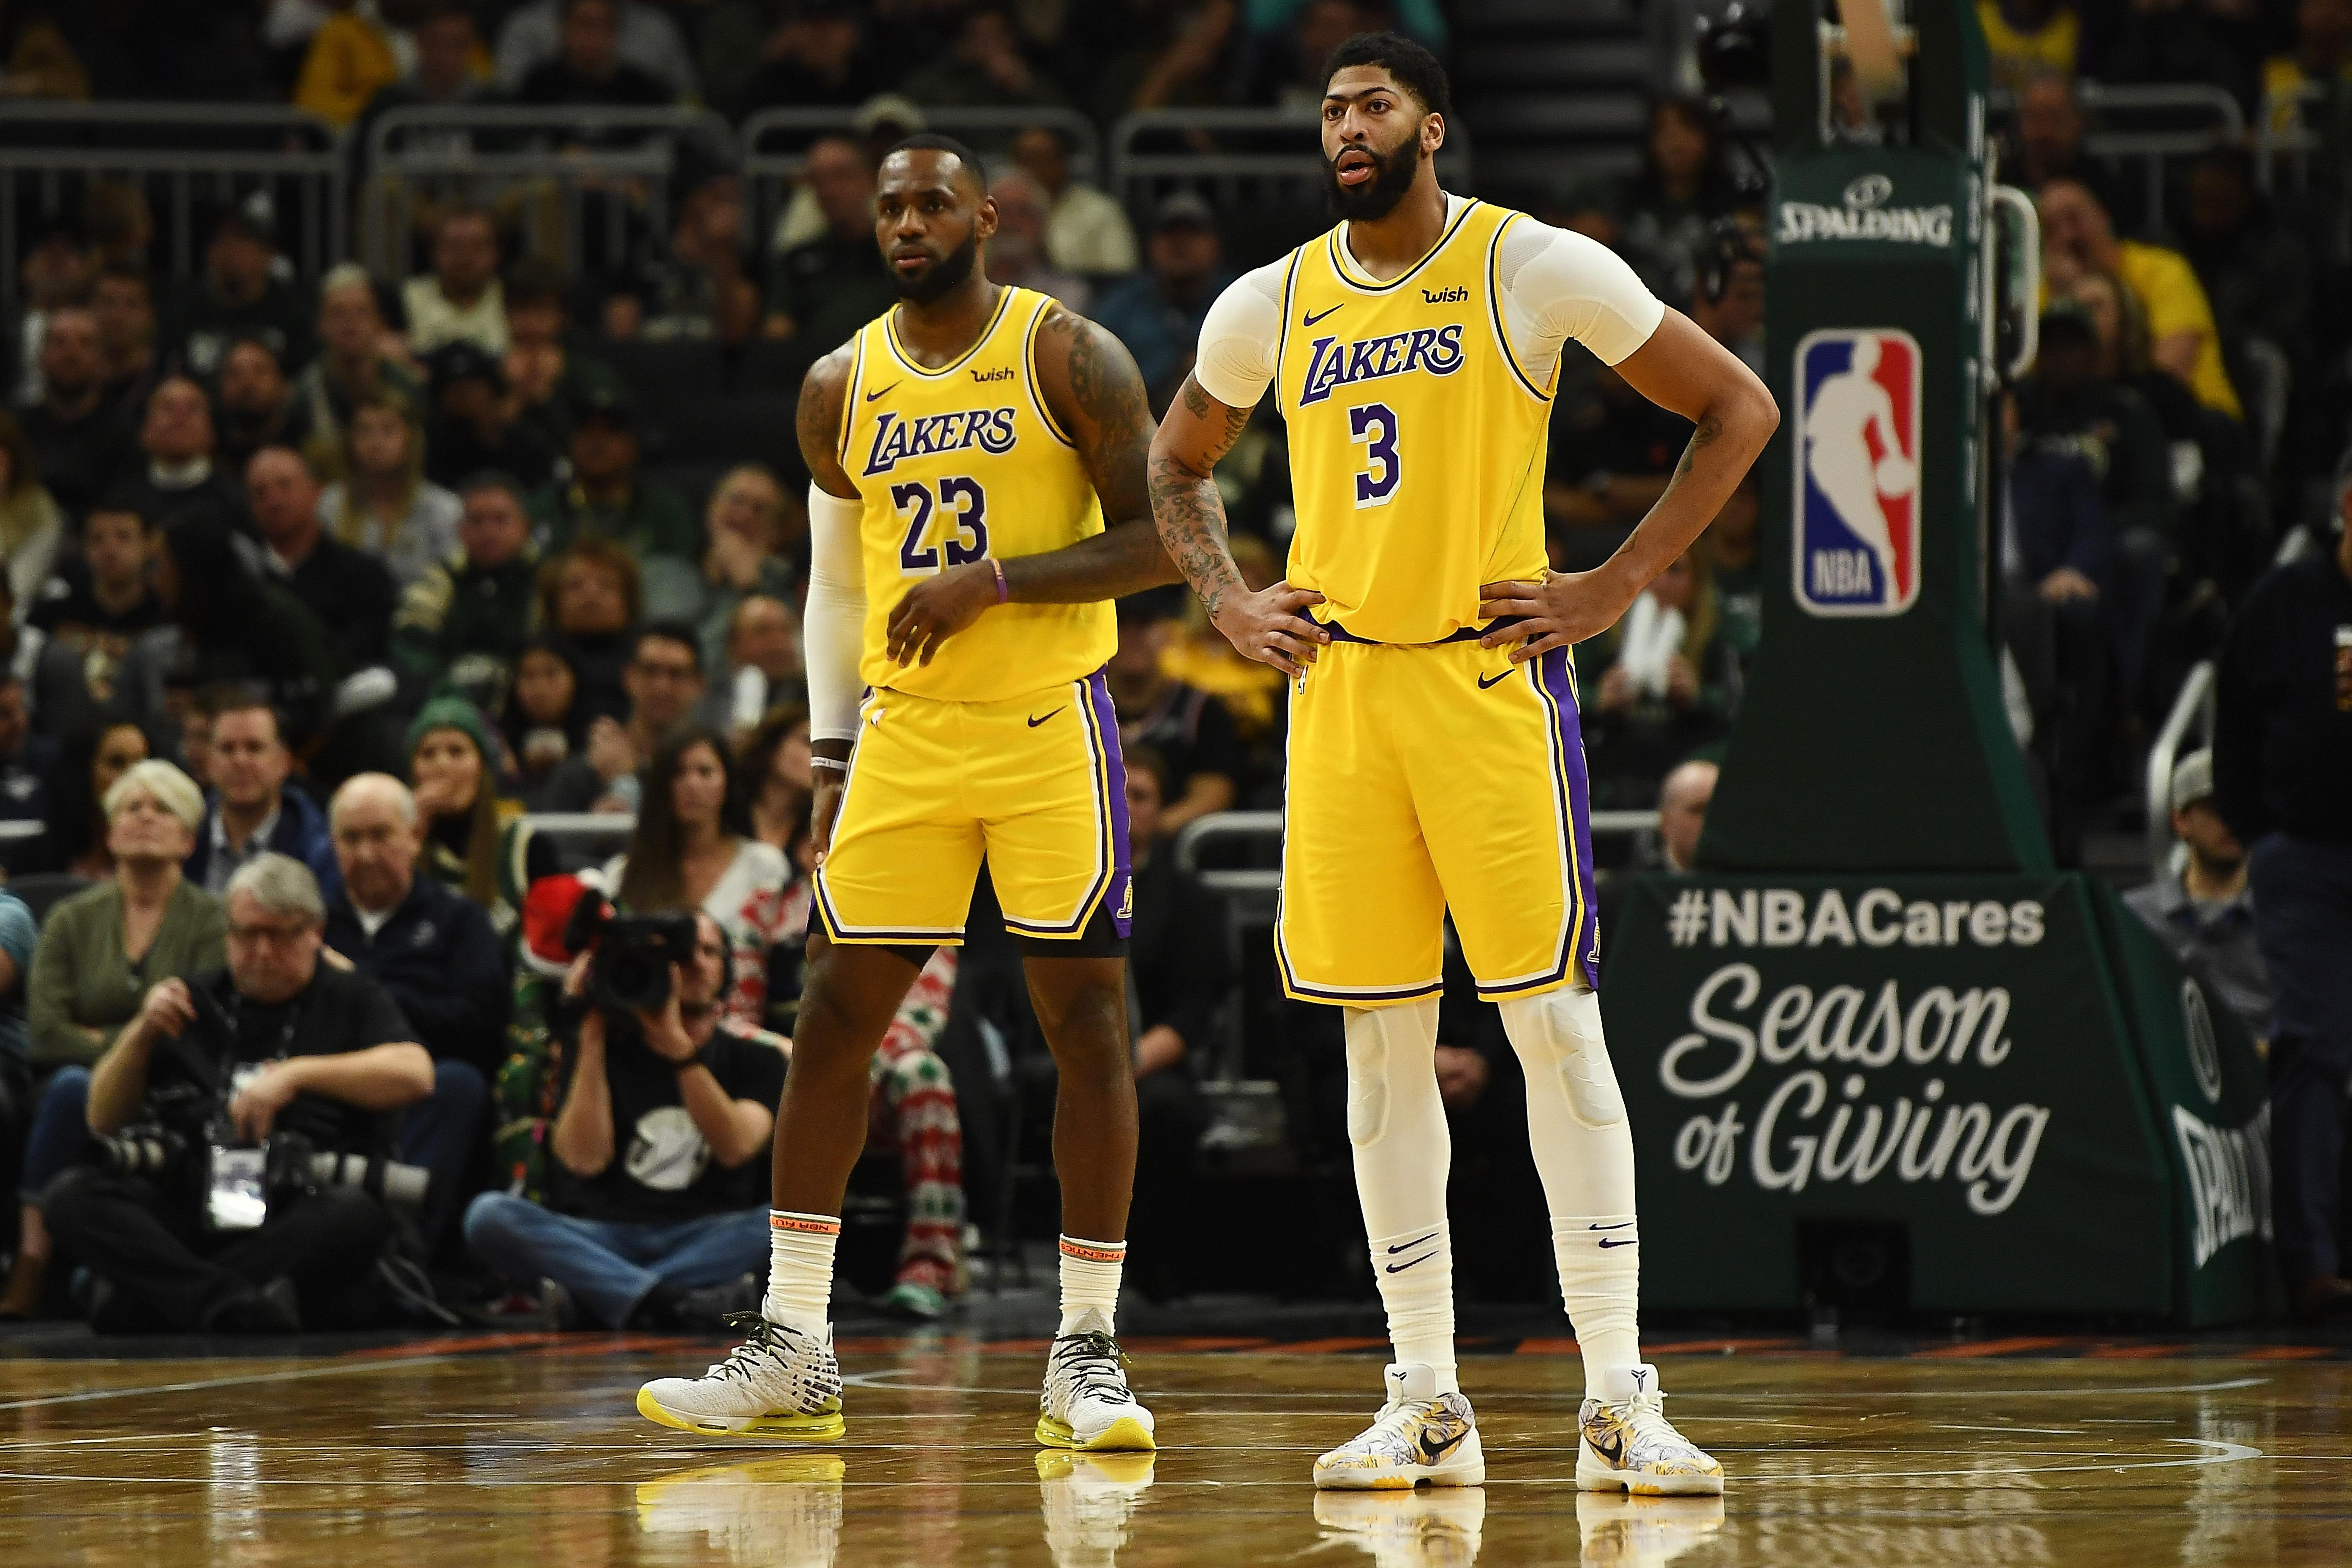 LeBron, Anthony Davis questionable for Lakers-Clippers game